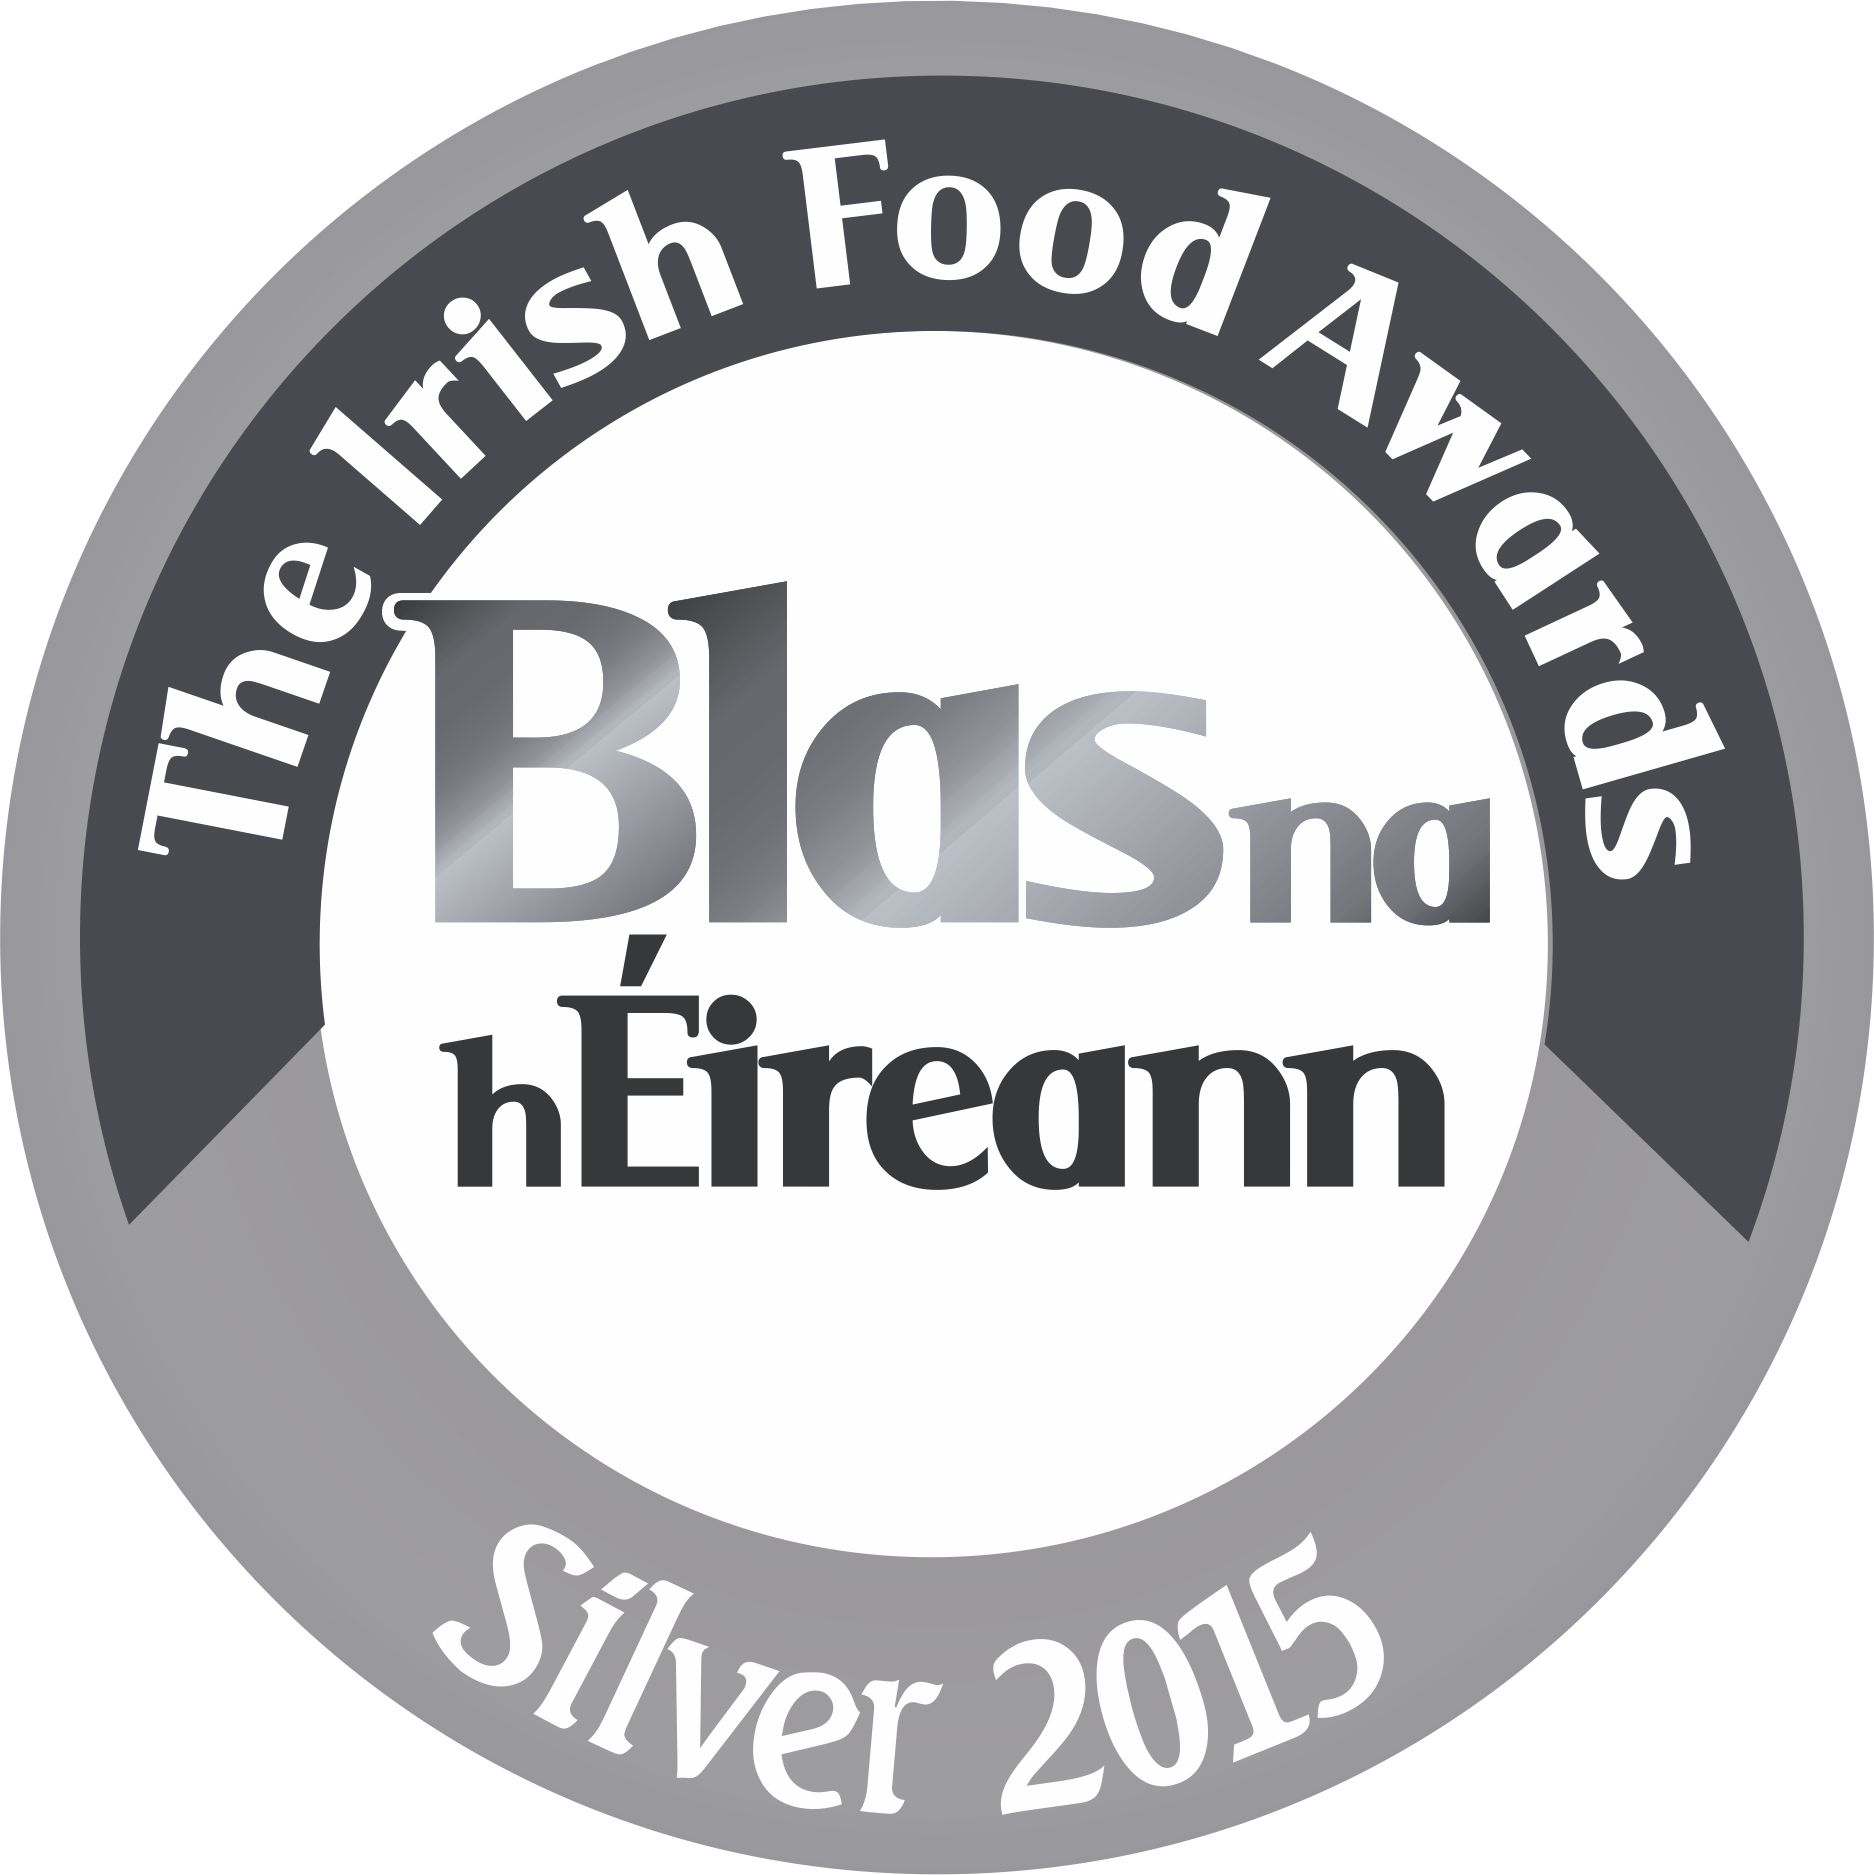 Blas na hEireann 2015 - Silver for Salted Butterscotch Sauce